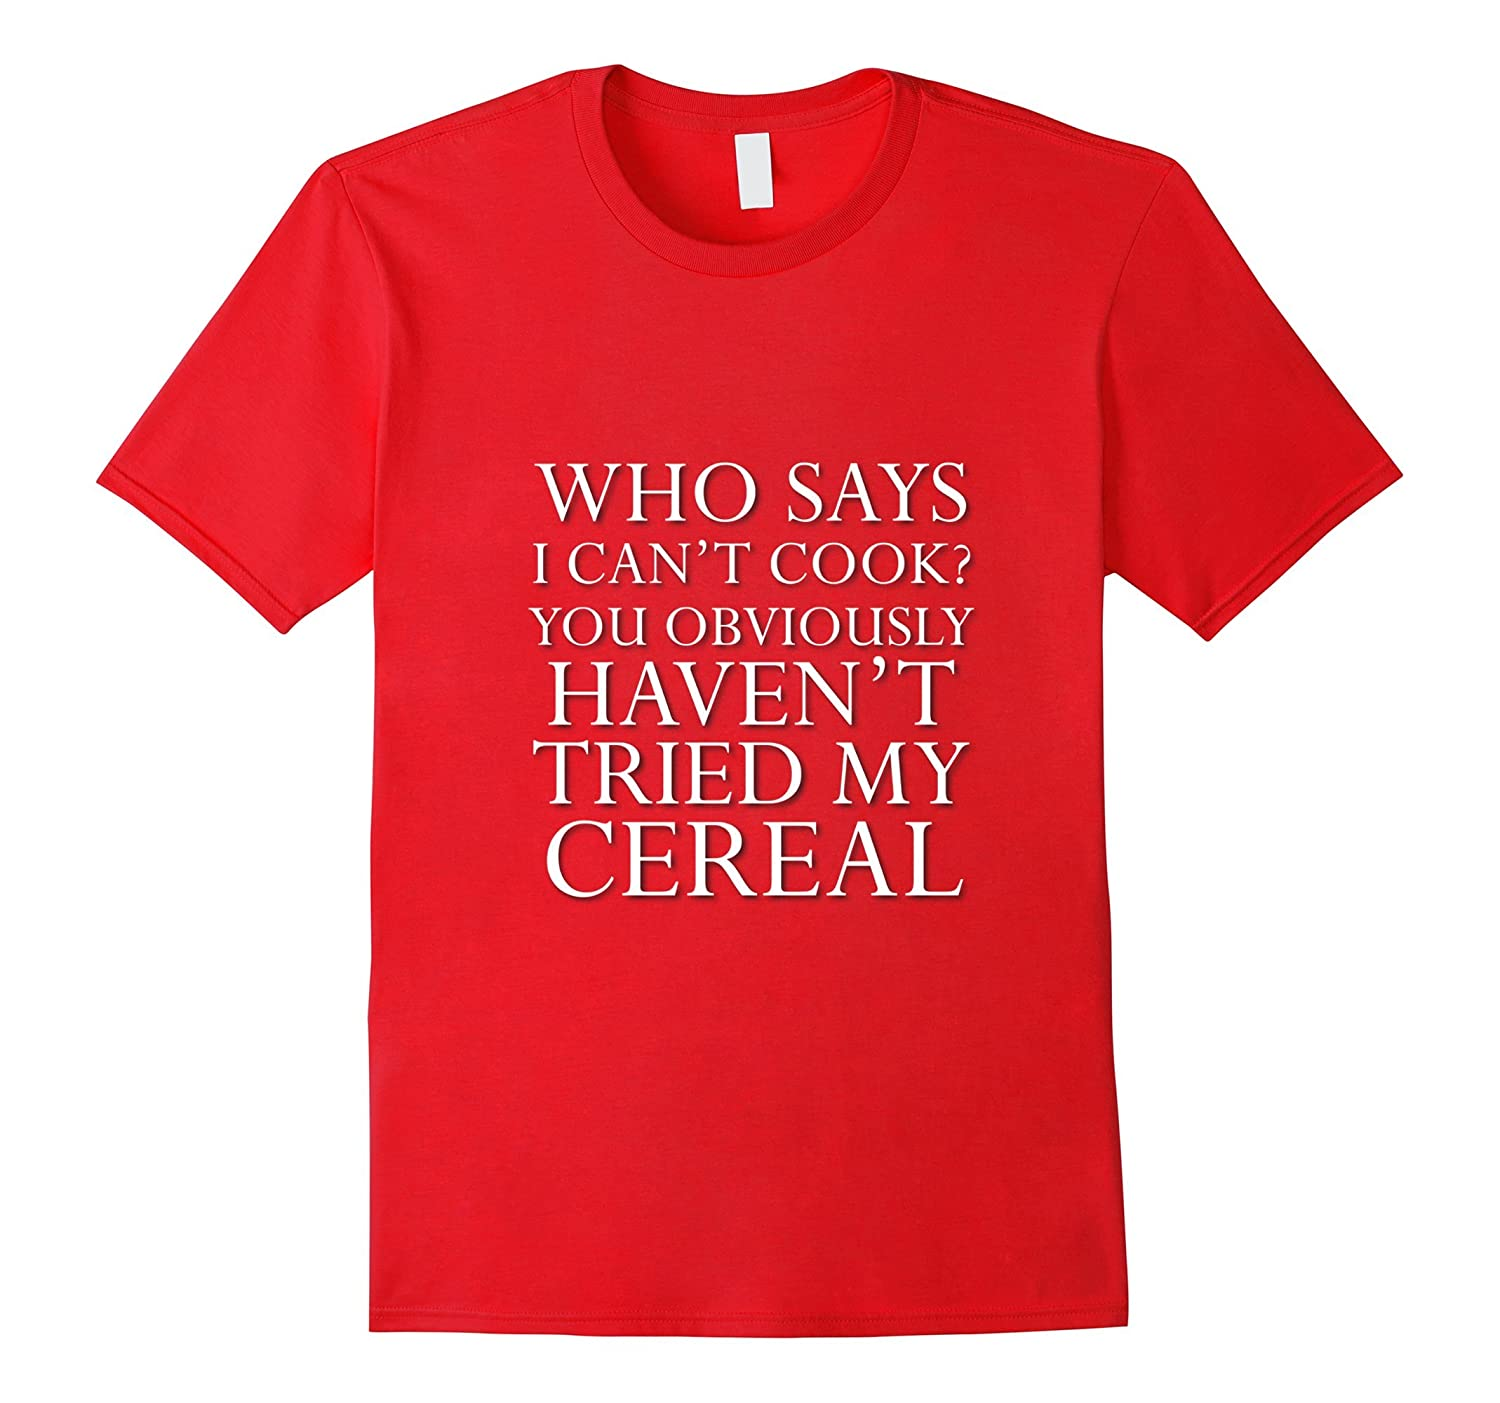 3fad96bf Who Says I Can't Cook Try My Cereal Funny Saying T Shirt-CL – Colamaga